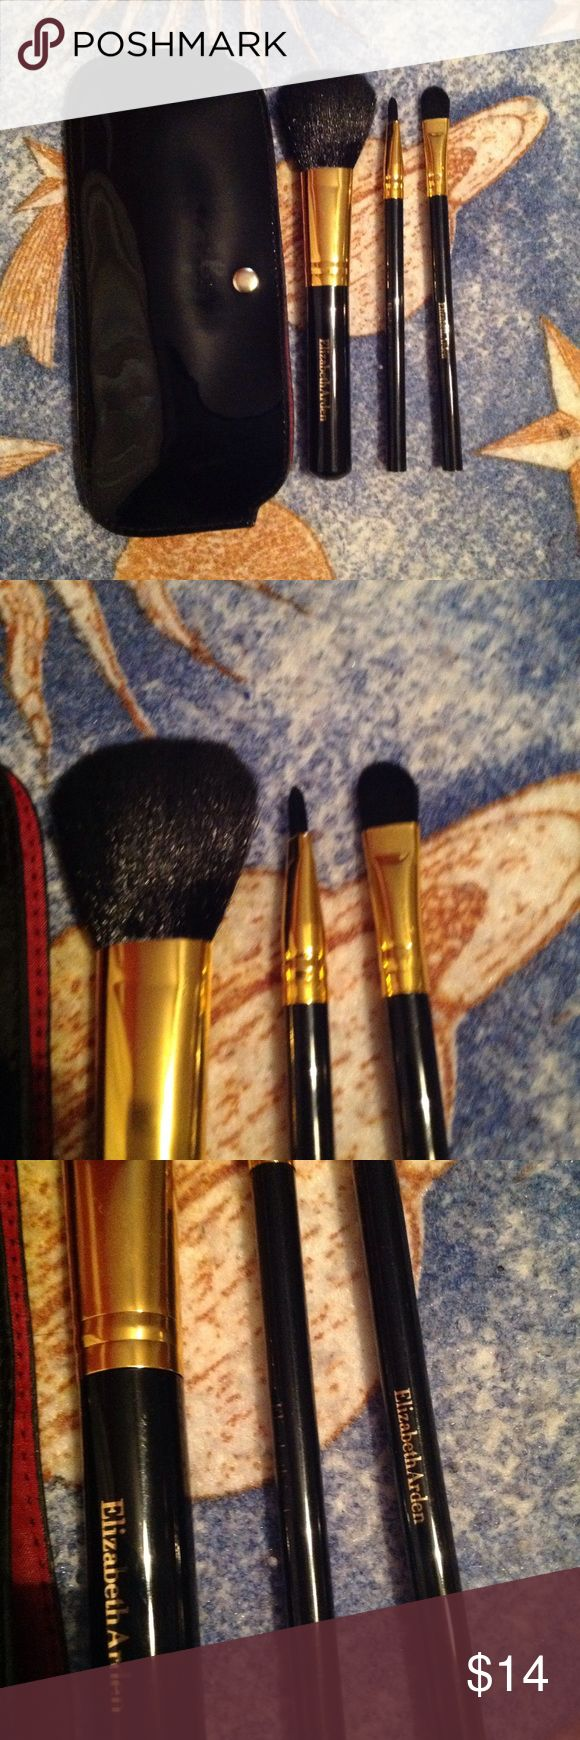 Elizabeth Arden Makeup Brushes and Pouch I got these from a gift set a year ago for xmas, never used. They're in mint condition, except the logo on the middle brush has faded off from being in the pouch. Extremely soft bristles. I use the $1 e.l.f brushes so I have no use for these, want them to go to a good home ❤️😍 Elizabeth Arden Makeup Brushes & Tools